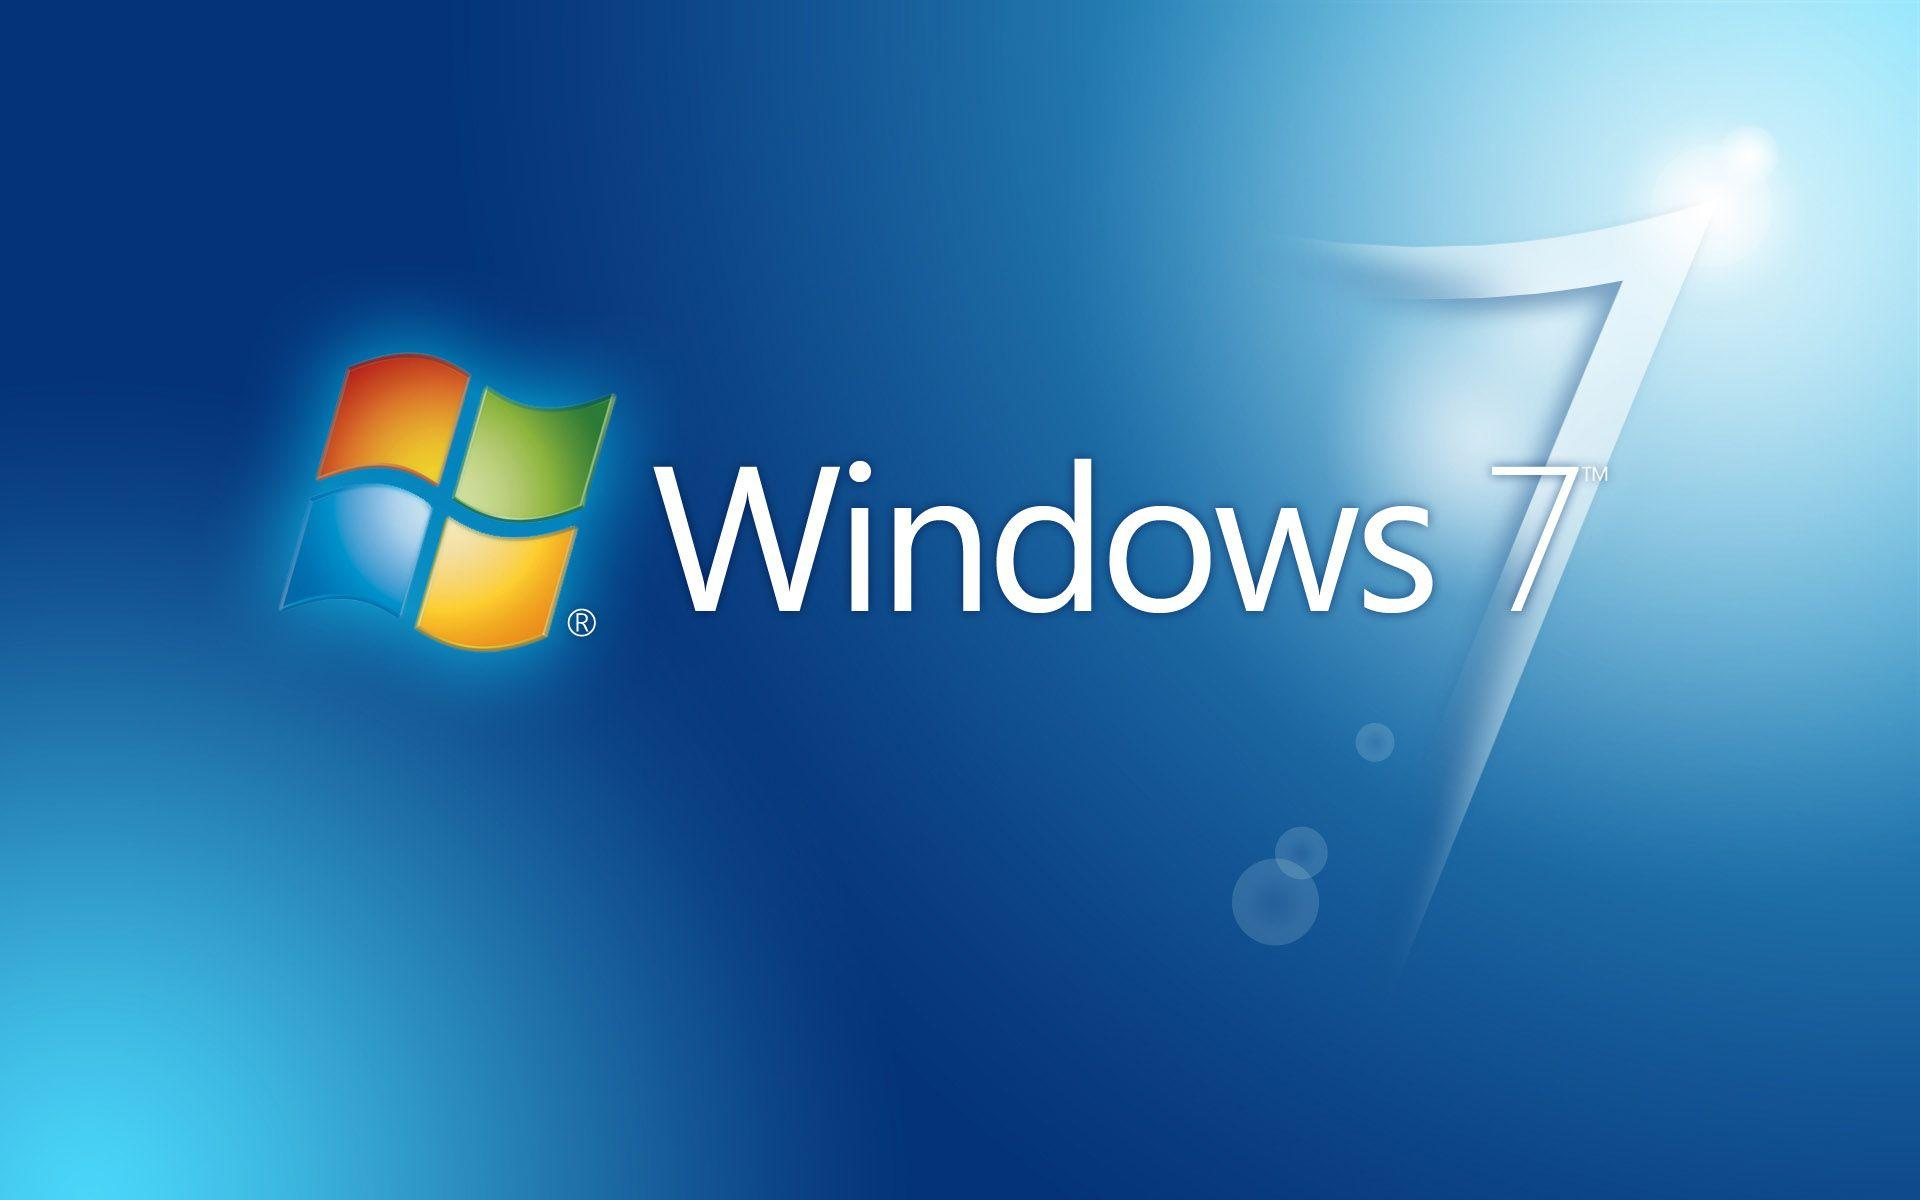 windows 7 backgrounds wallpapers